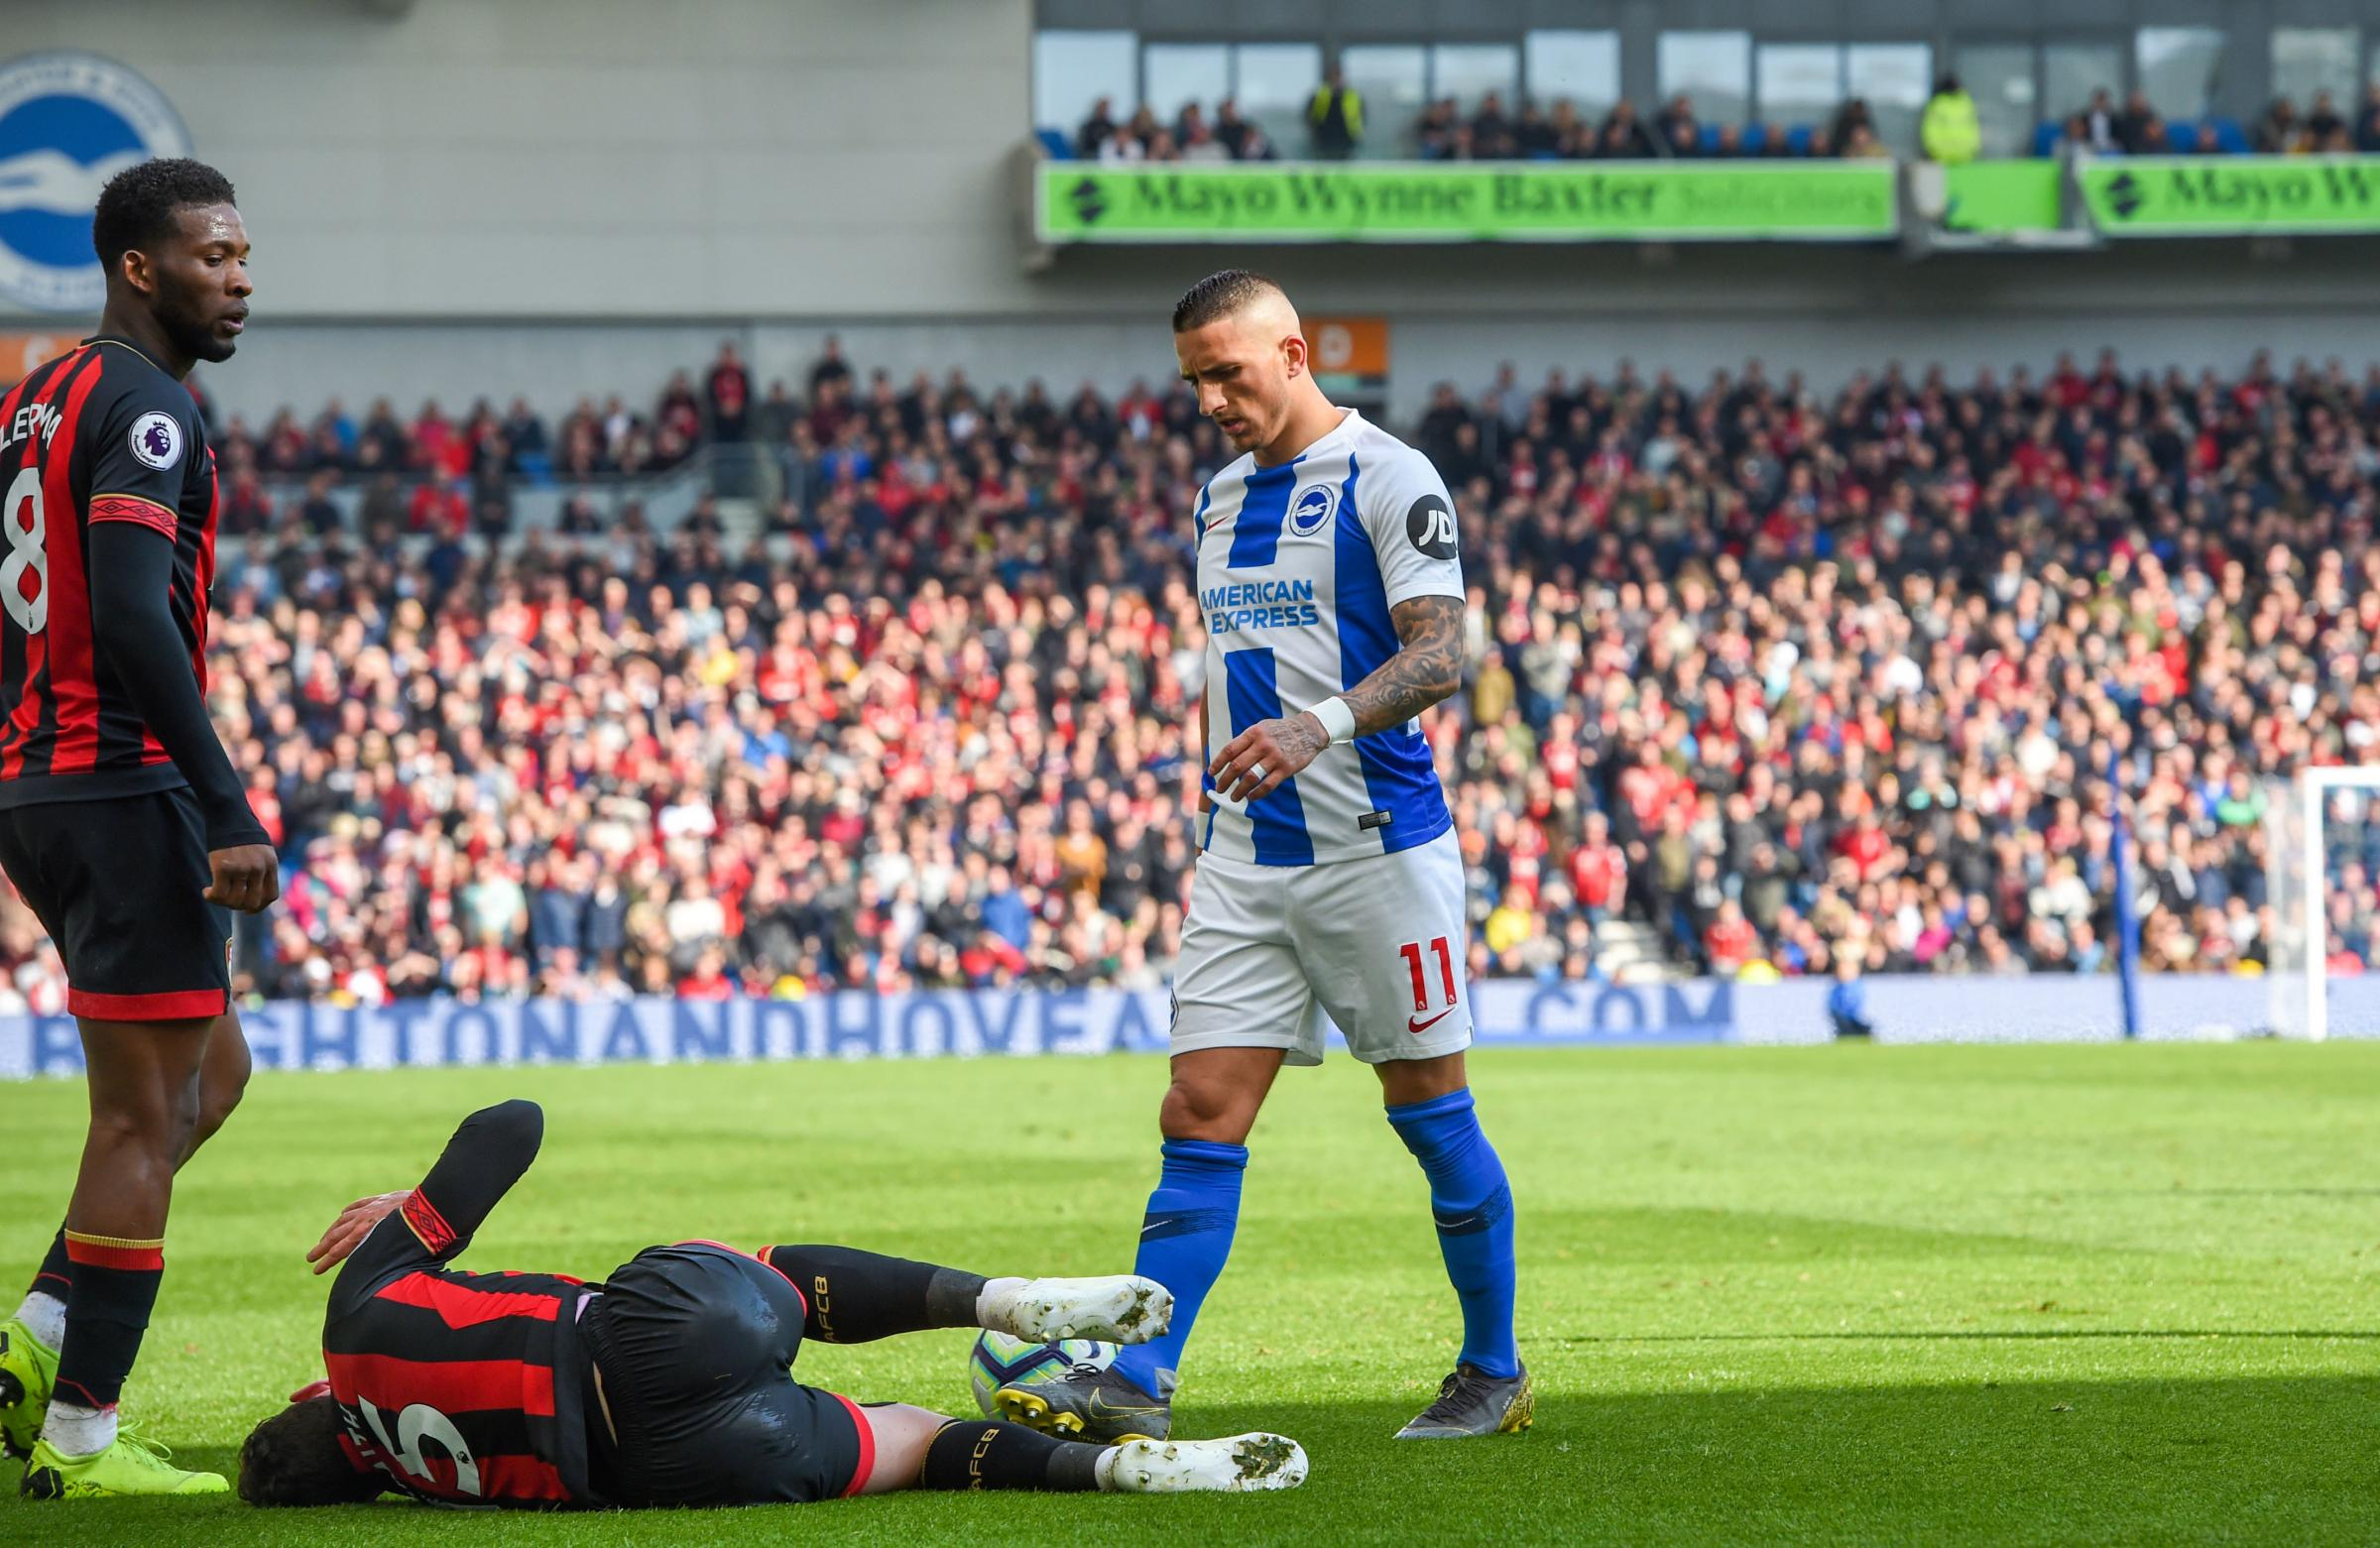 Anthony Knockaert was sent off for a challenge that left Bournemouth's Adam Smith requiring treatment